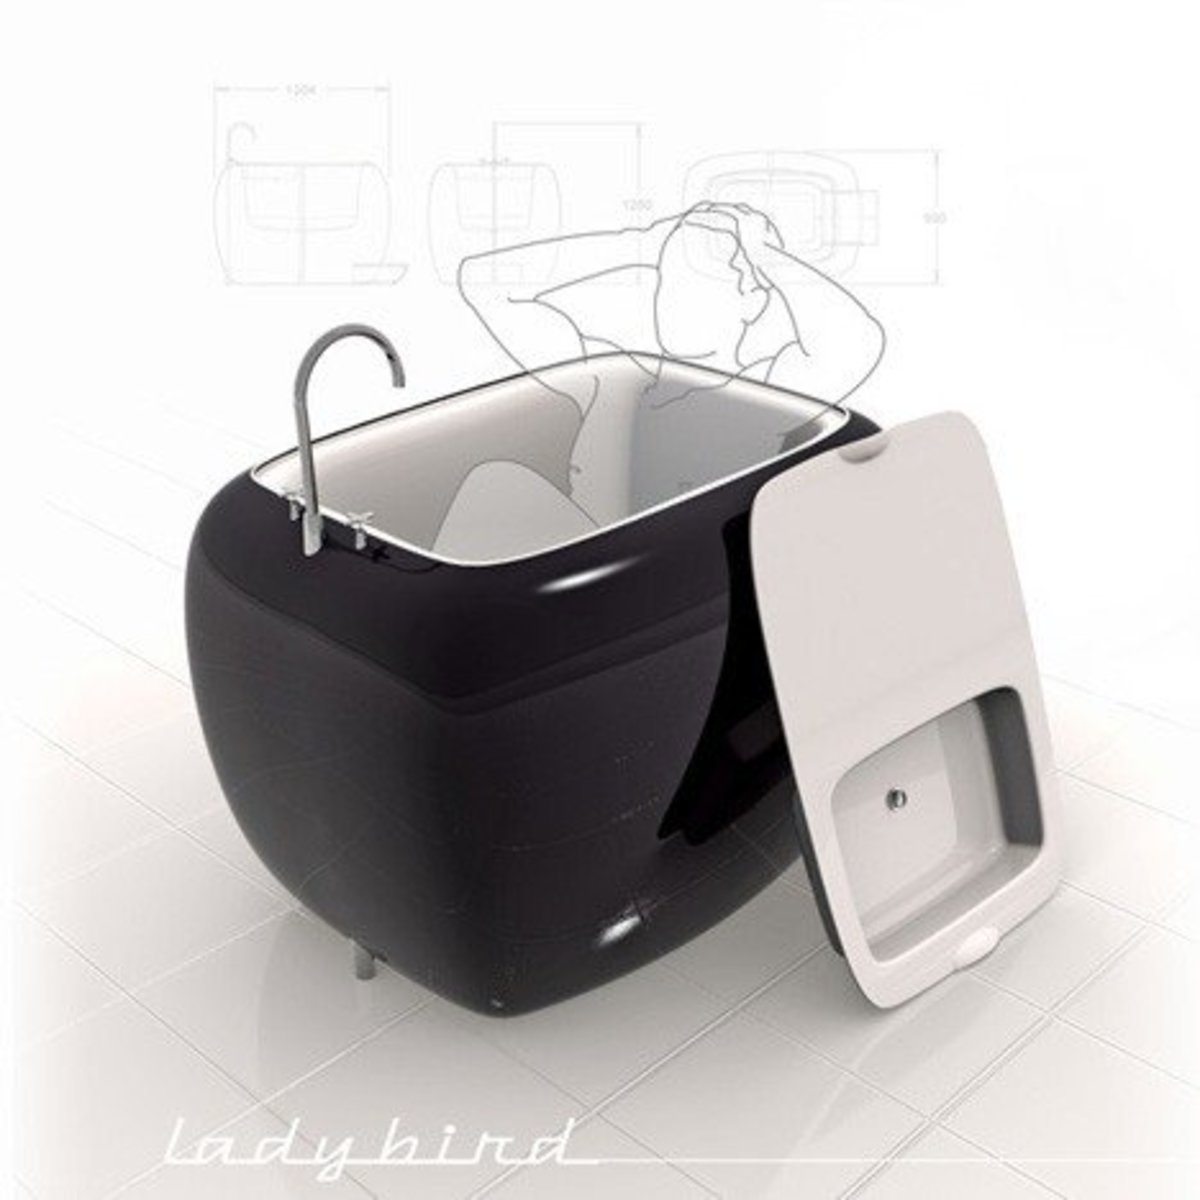 More and more options are available for smaller than normal tubs, which are common in parts of Europe. This one does double-duty, providing a removable sink.